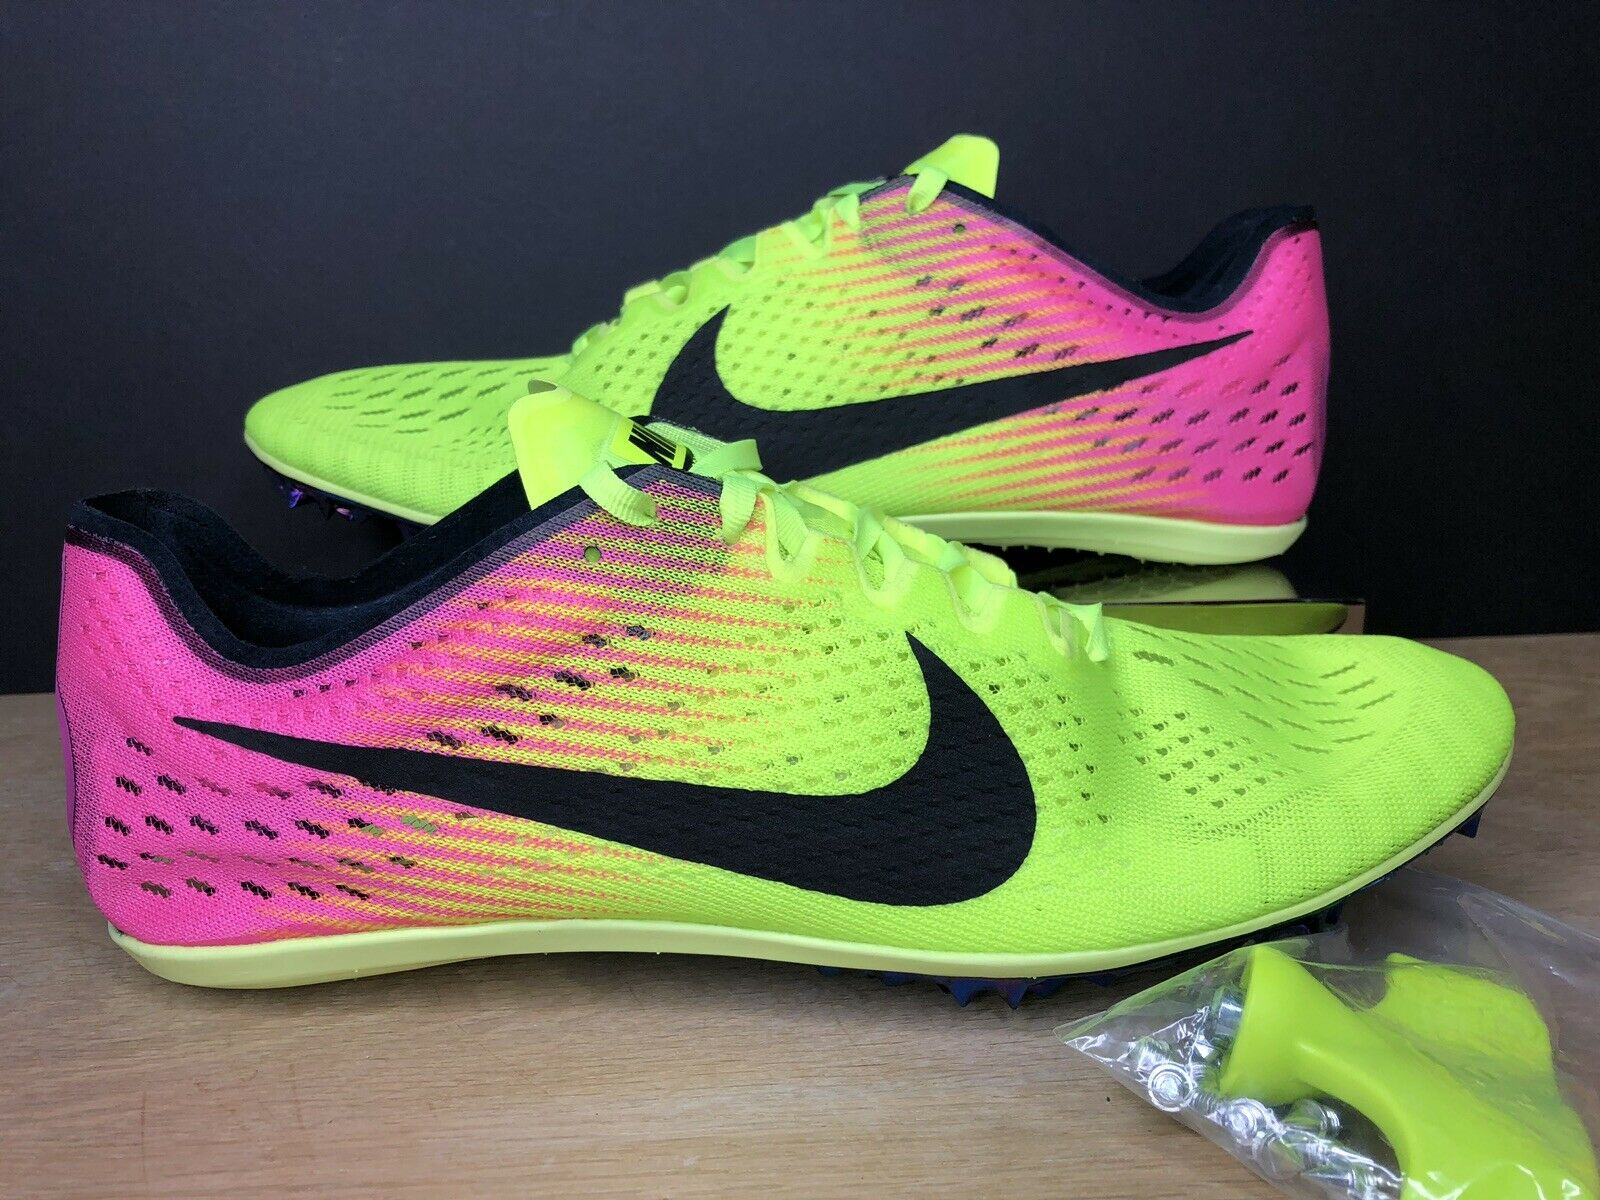 New Nike Zoom Victory 3 Running shoes Rio Volt Pink 835997-999 Size 11.5